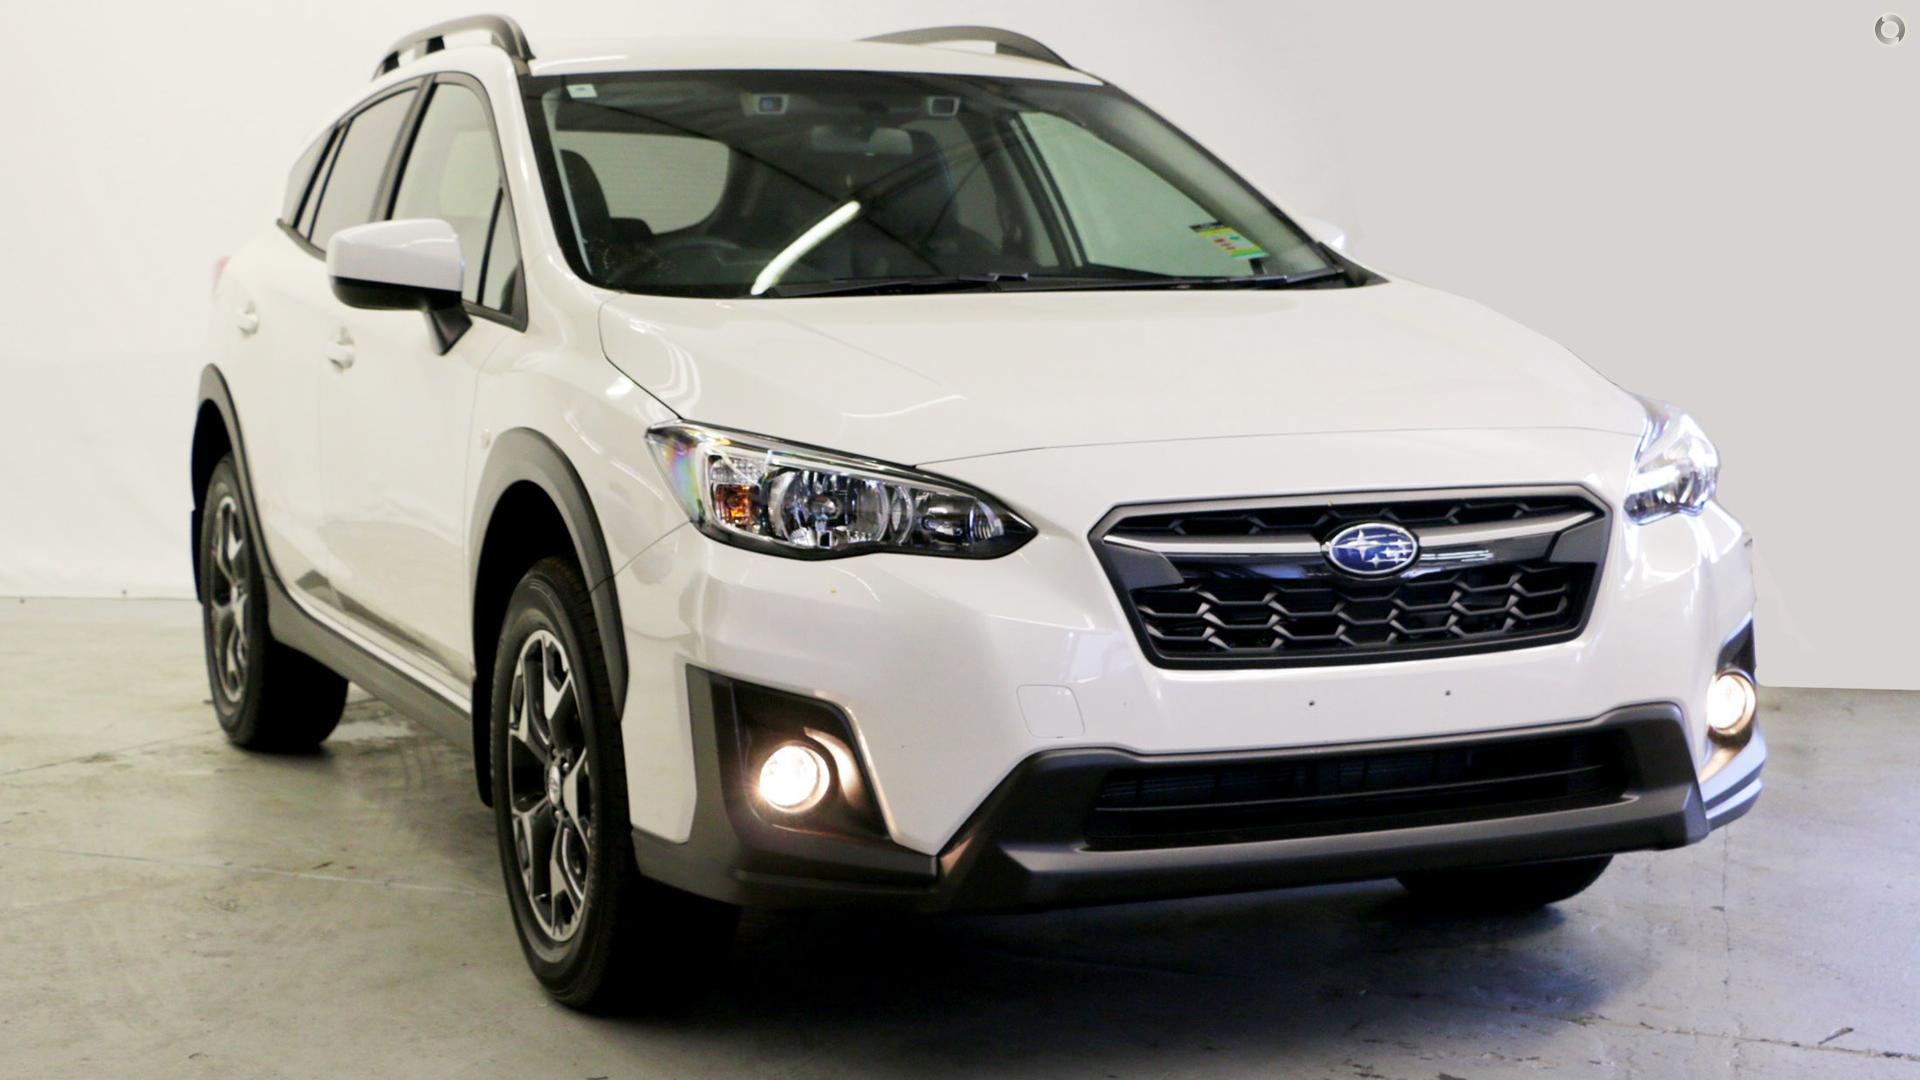 2019 Subaru Xv 2.0i Limited Edition G5X